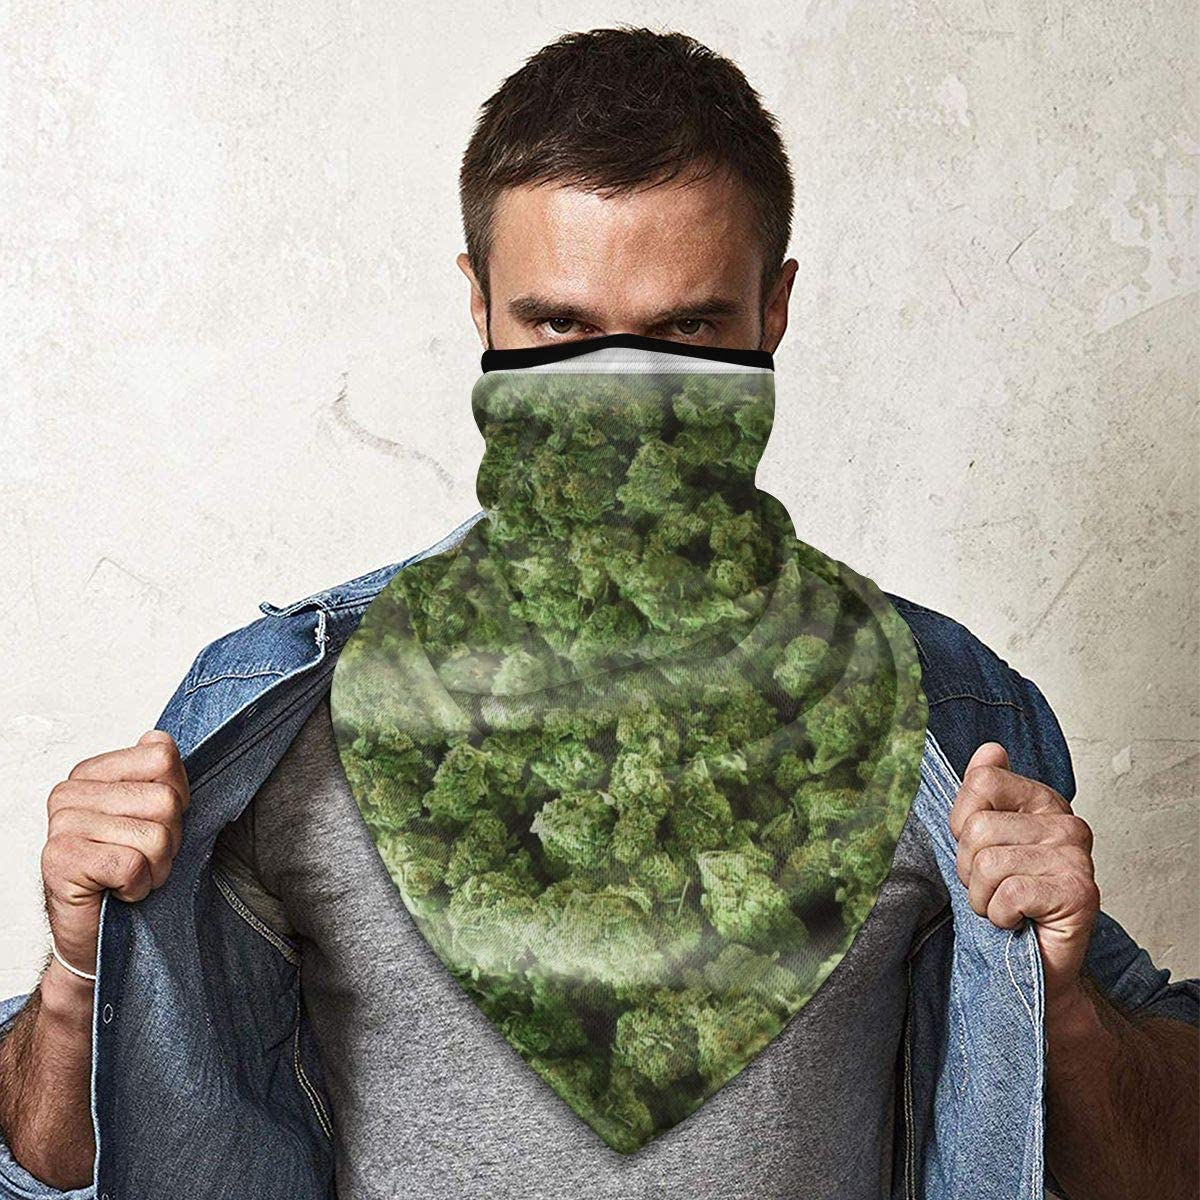 Wind-Resistant Face Mask/& Neck Gaiter,Balaclava Ski Masks,Breathable Tactical Hood,Windproof Face Warmer for Running,Motorcycling,Hiking-A Big Old Bag of Weed Case